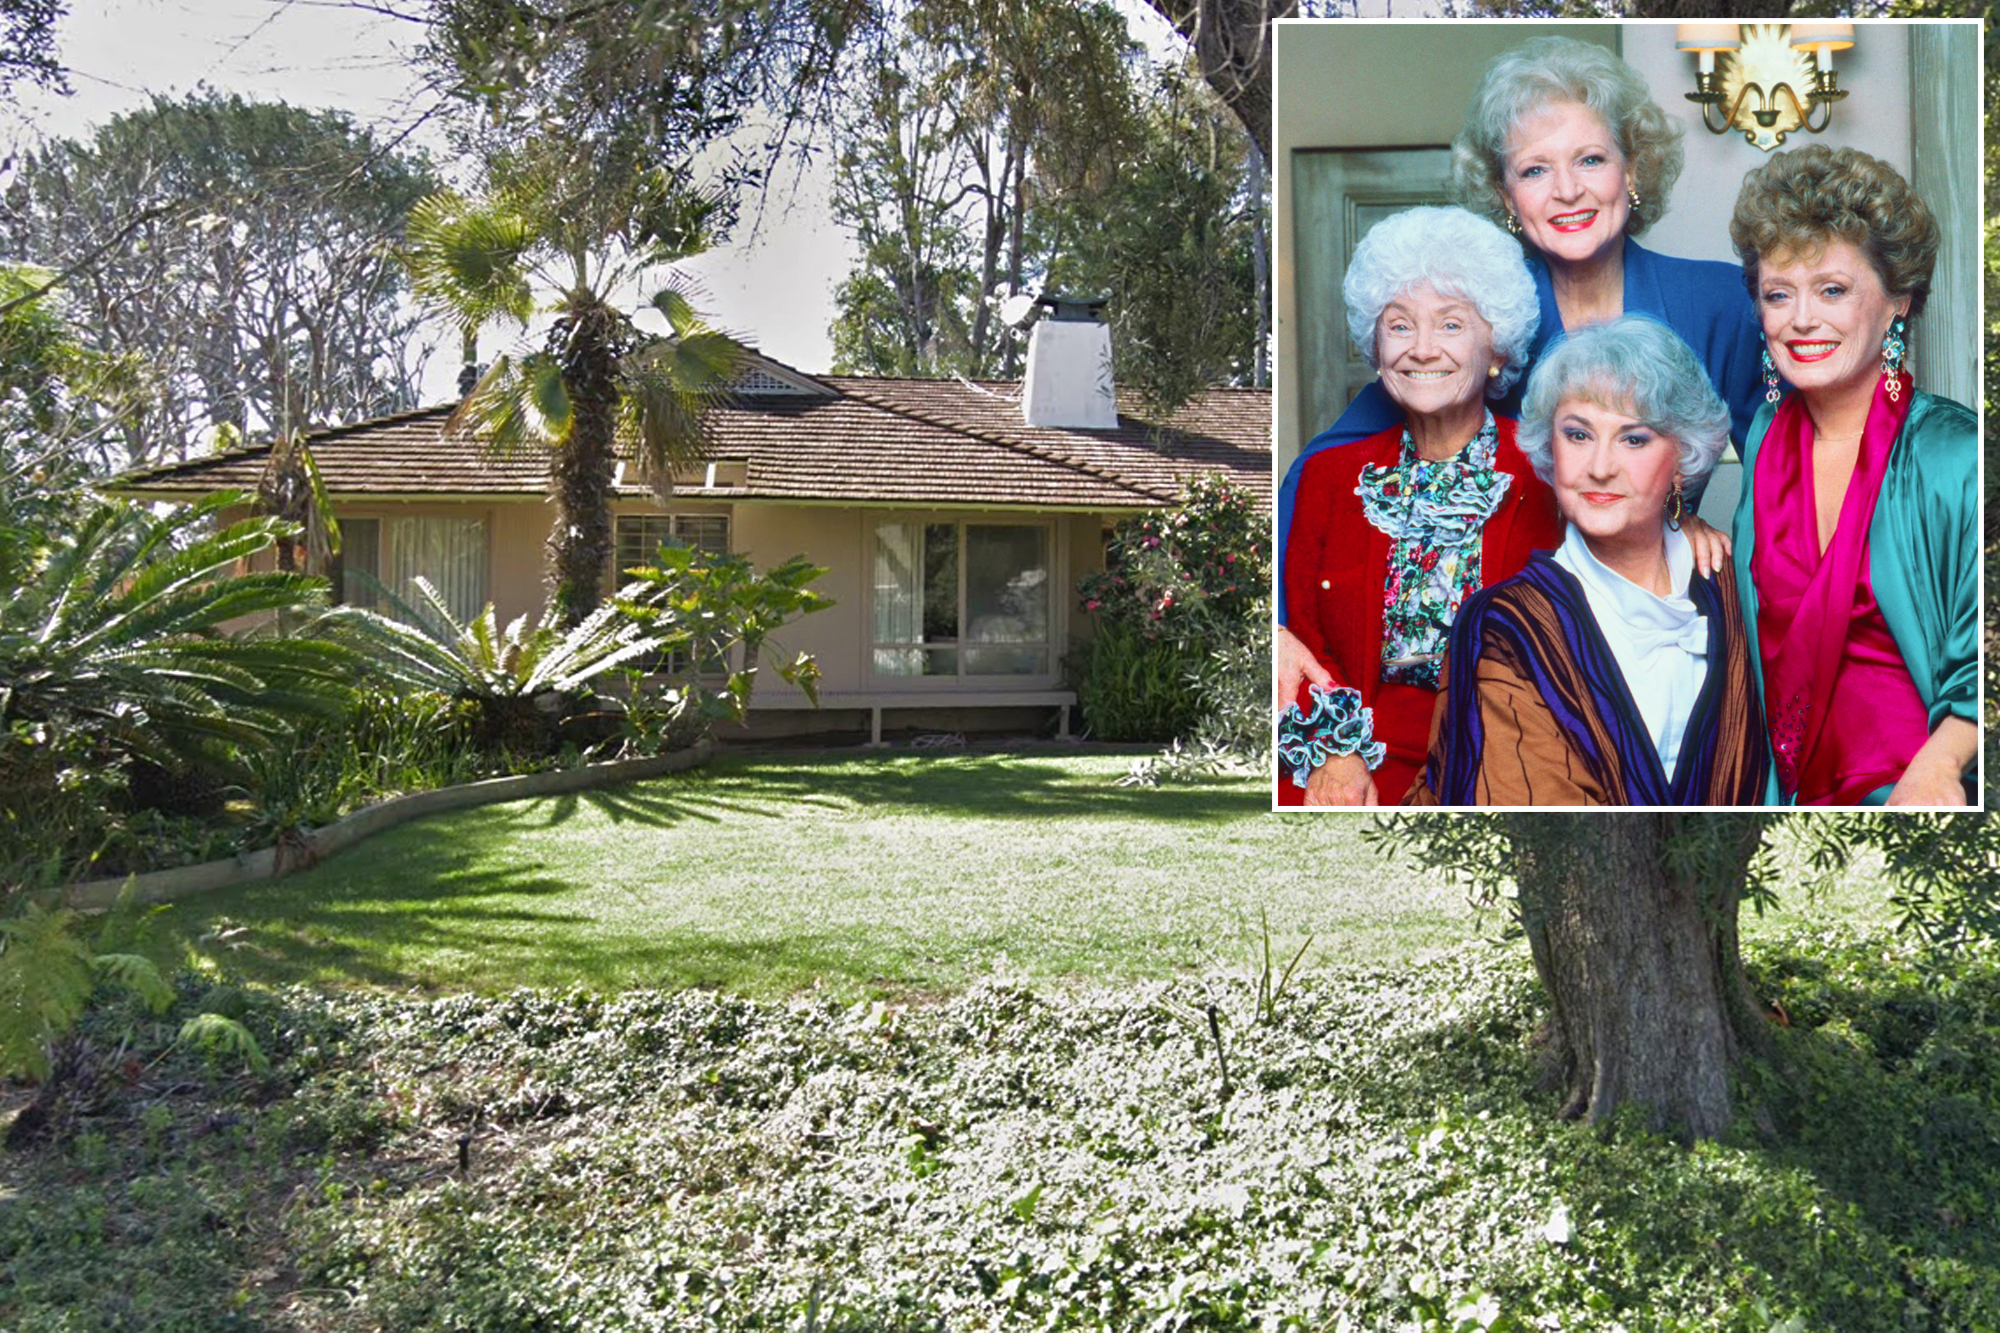 Hgtv S Property Brothers Want To Renovate Golden Girls House,2 Bedroom House Plans With Basement